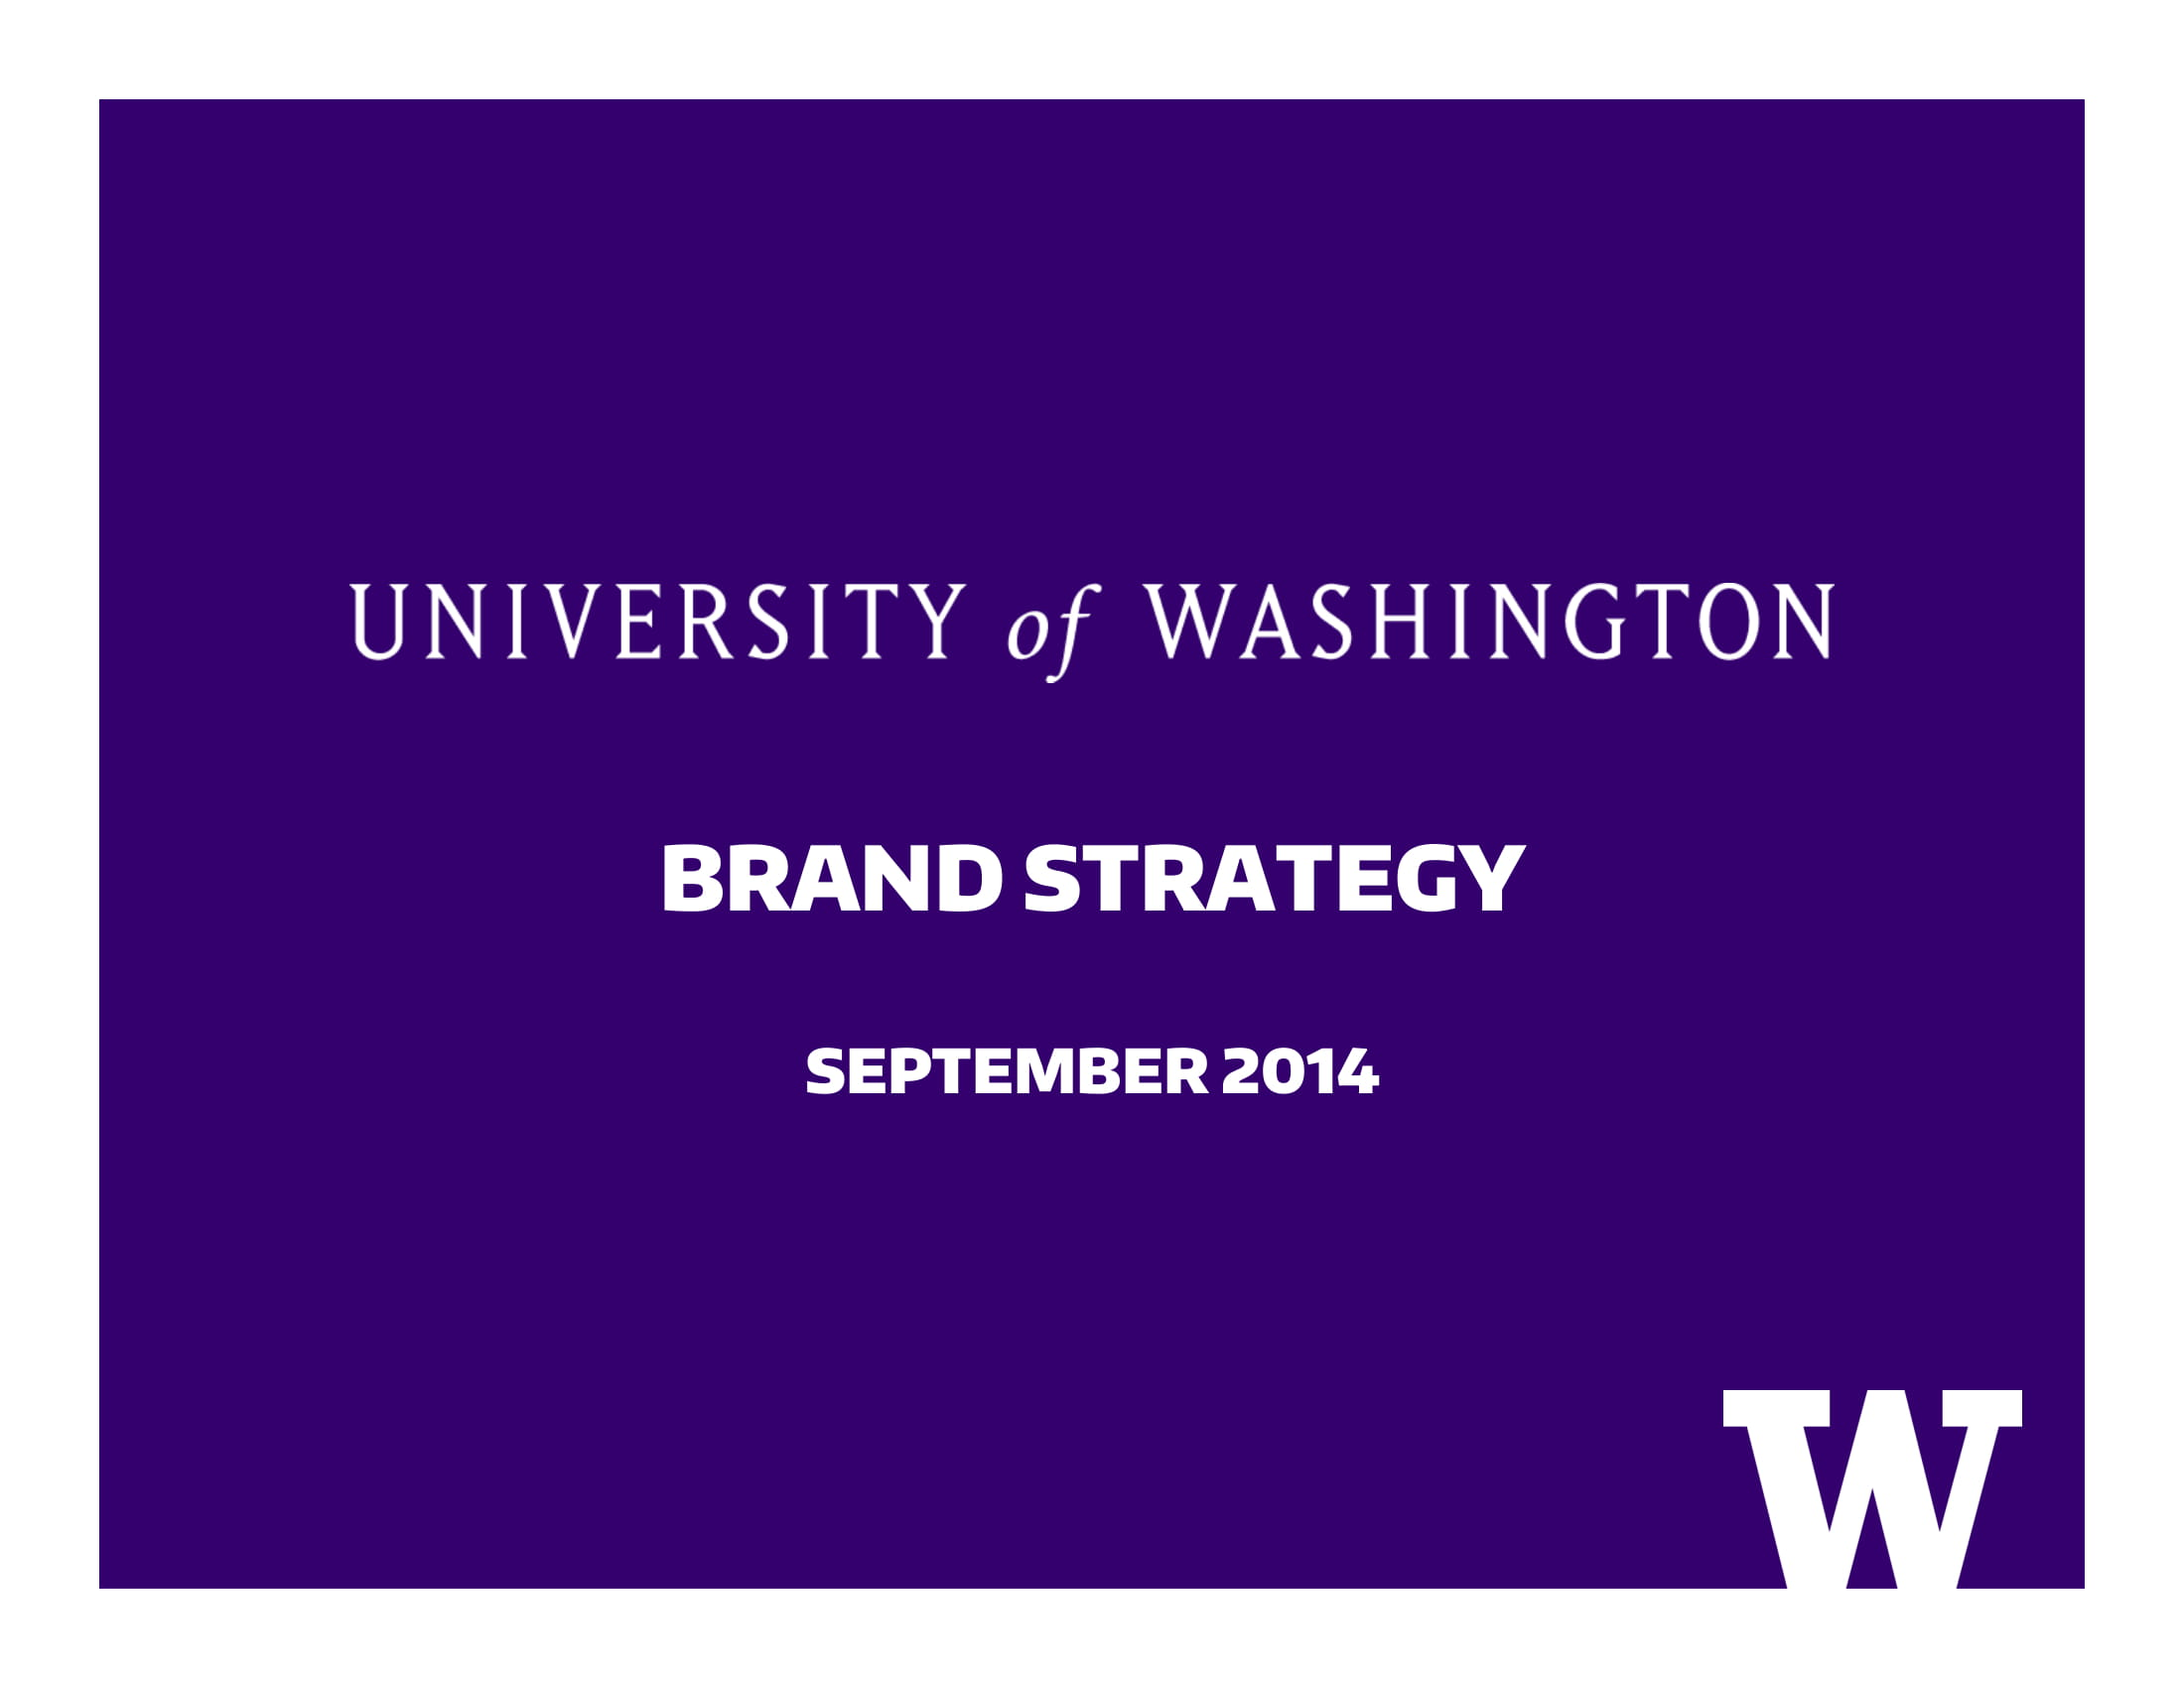 university brand strategy plan example